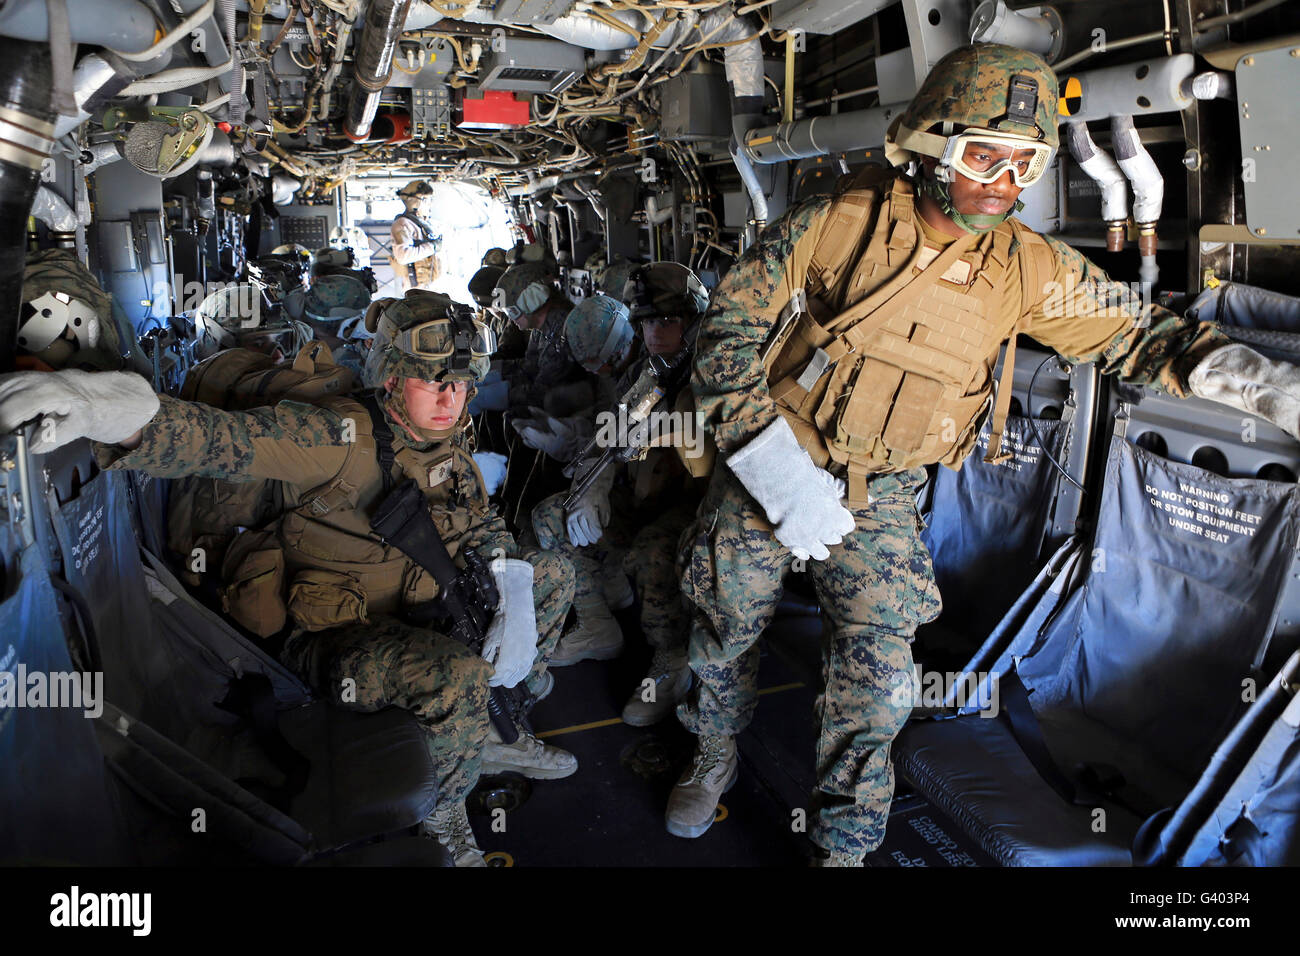 U.S. Marines and Sailors prepare to conduct helicopter rope suspension training. Stock Photo